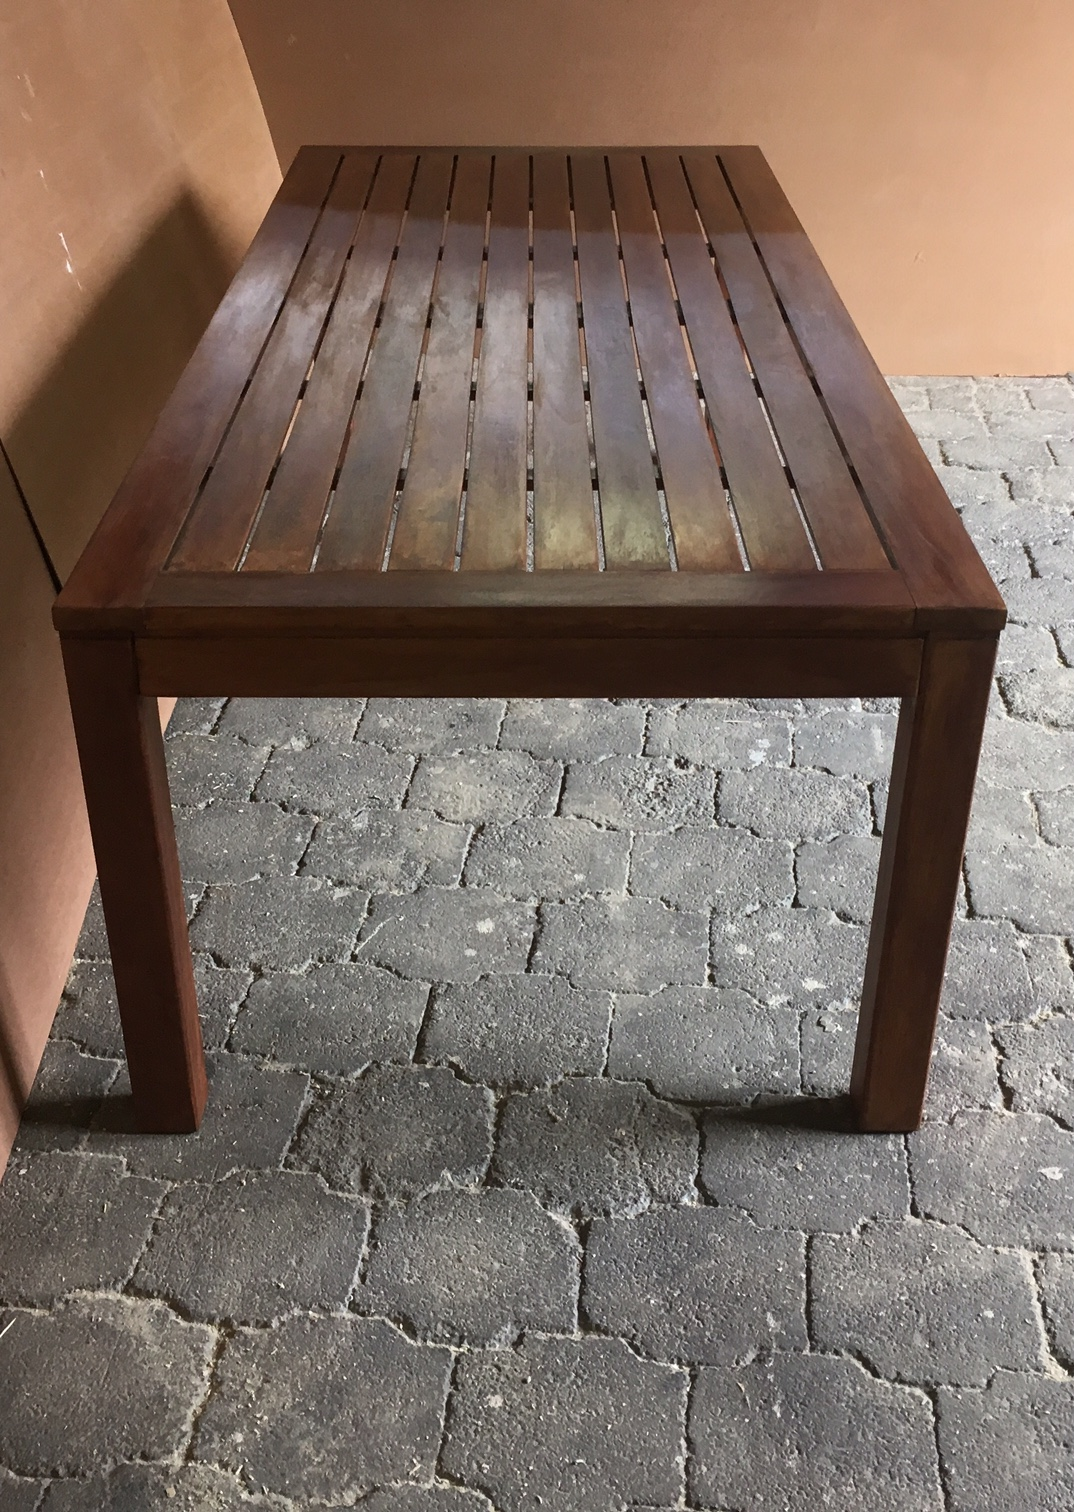 Patio table Cottage series 2300 slatted strips Stained